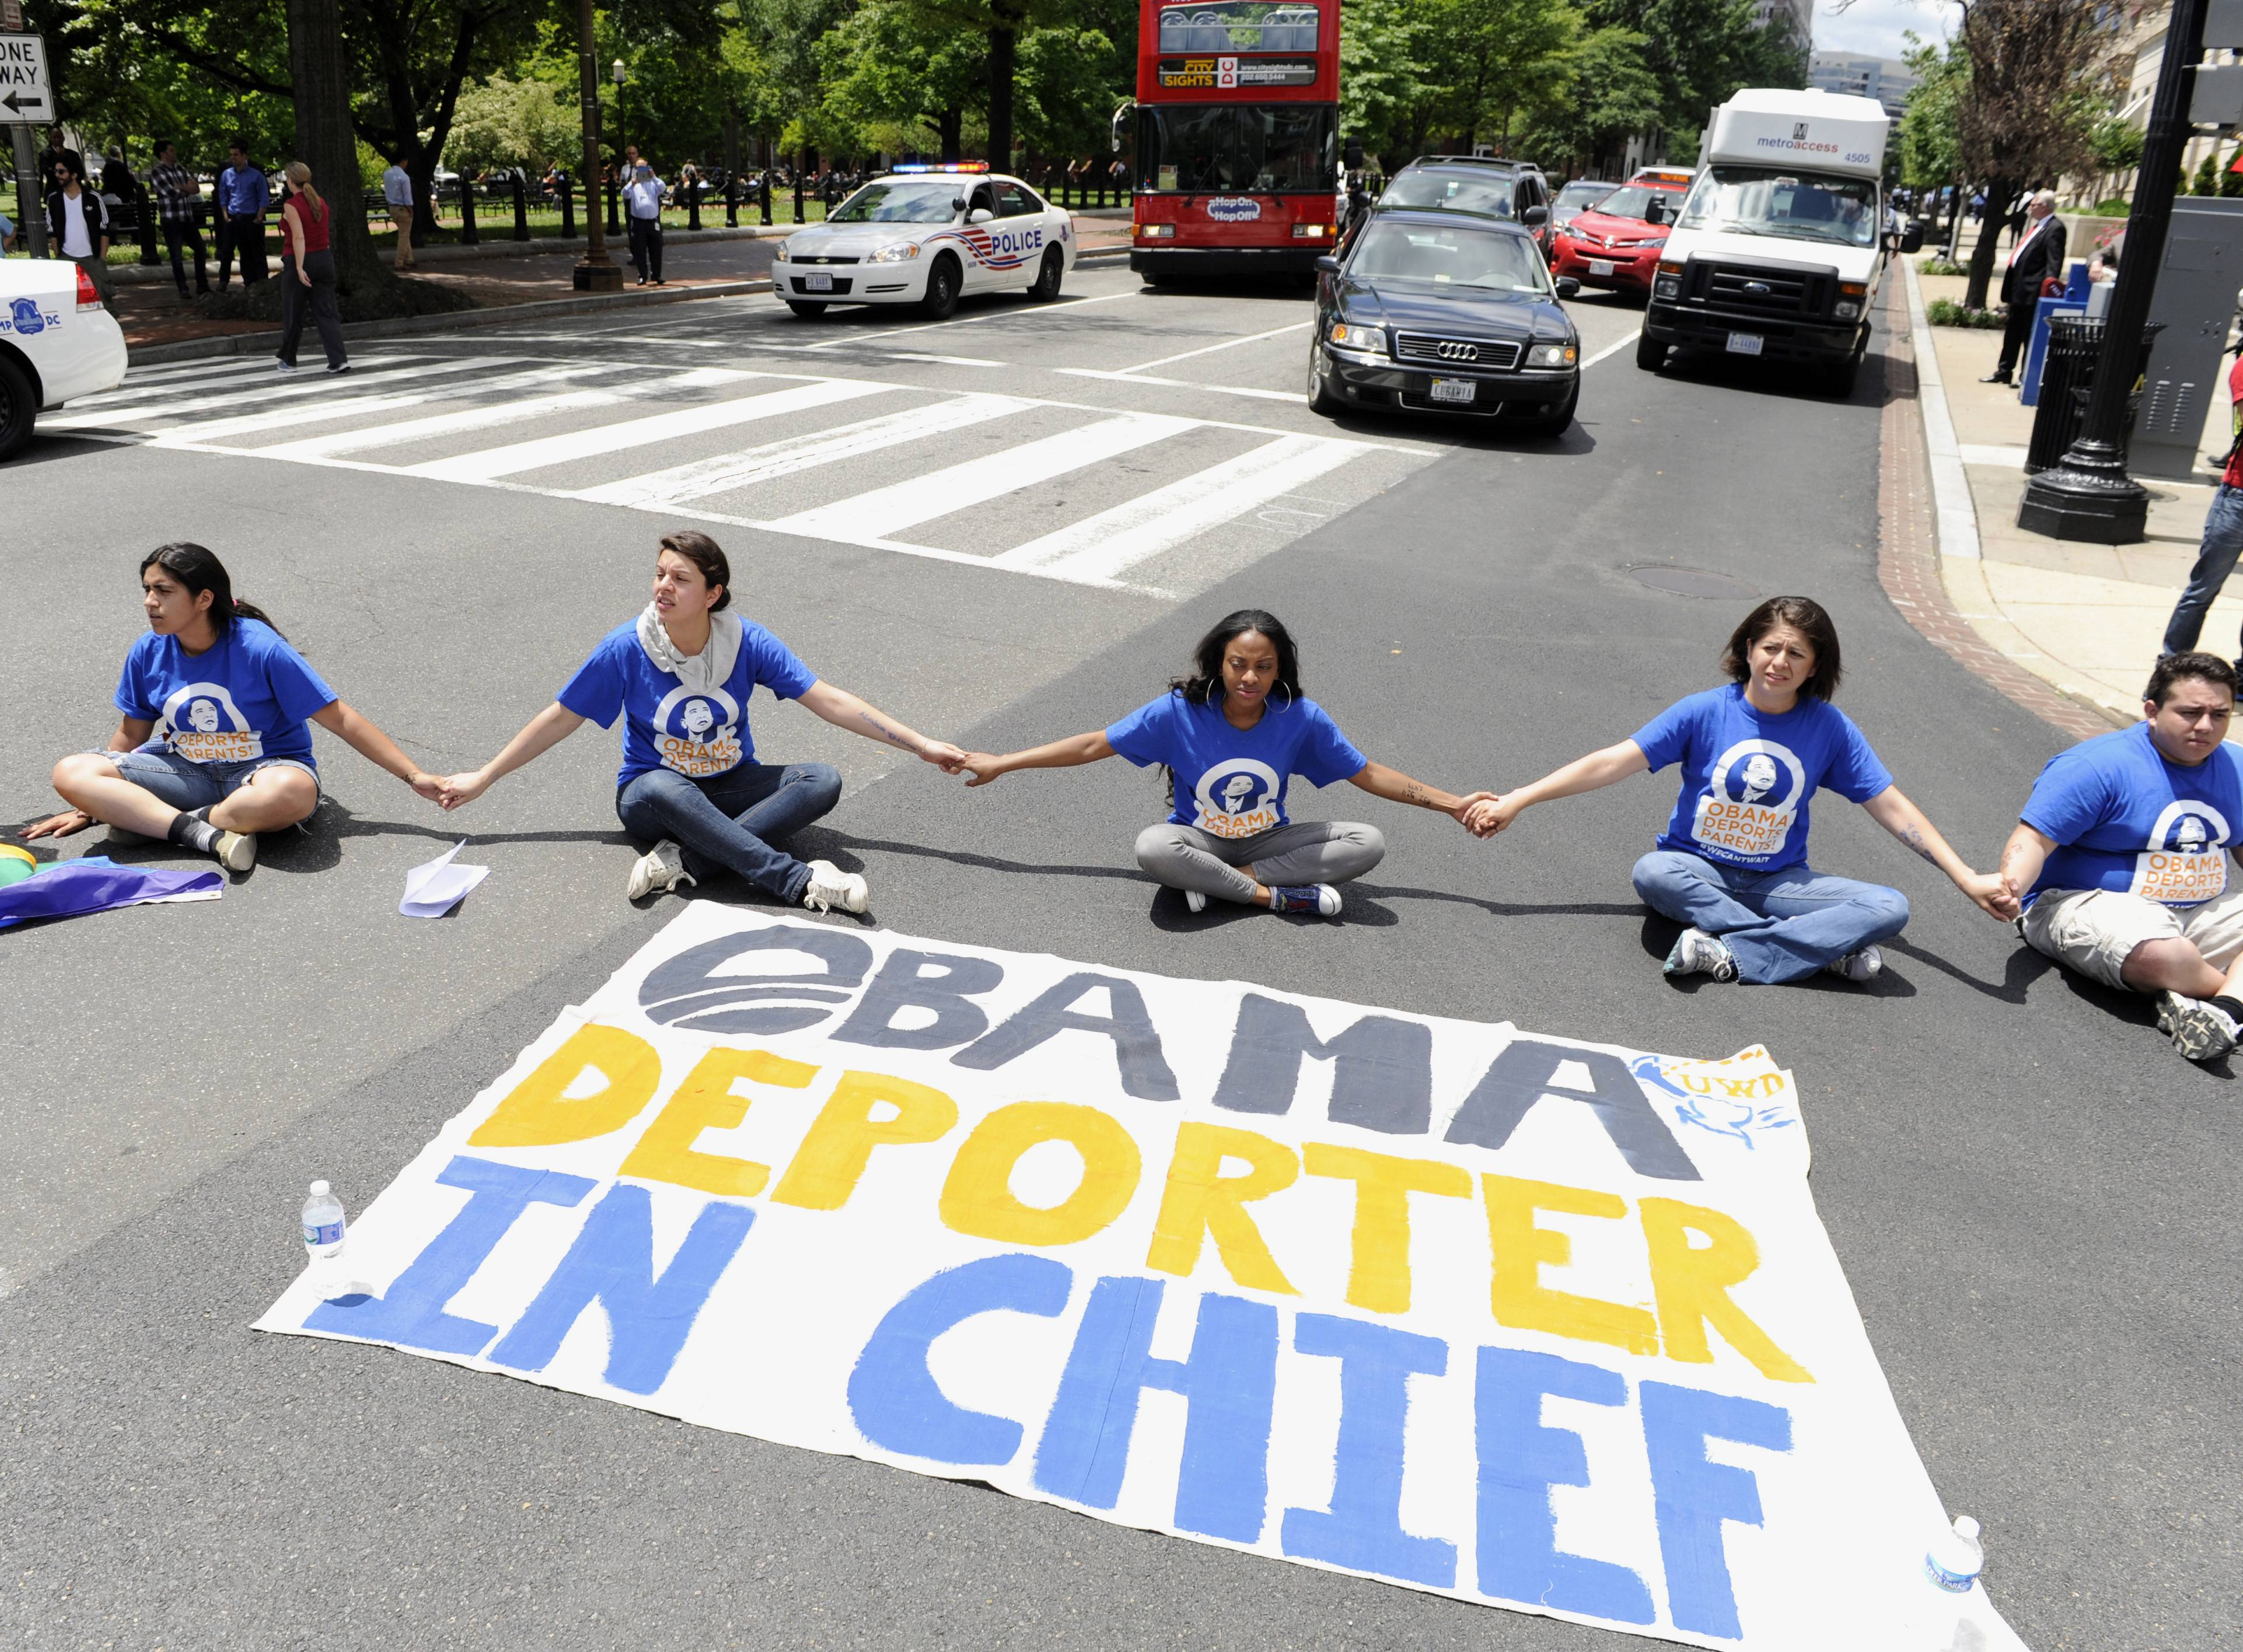 Protestors block traffic near the White House in Washington in response to President Obama's decision to delay the deportation review he ordered from the Department of Homeland Security.